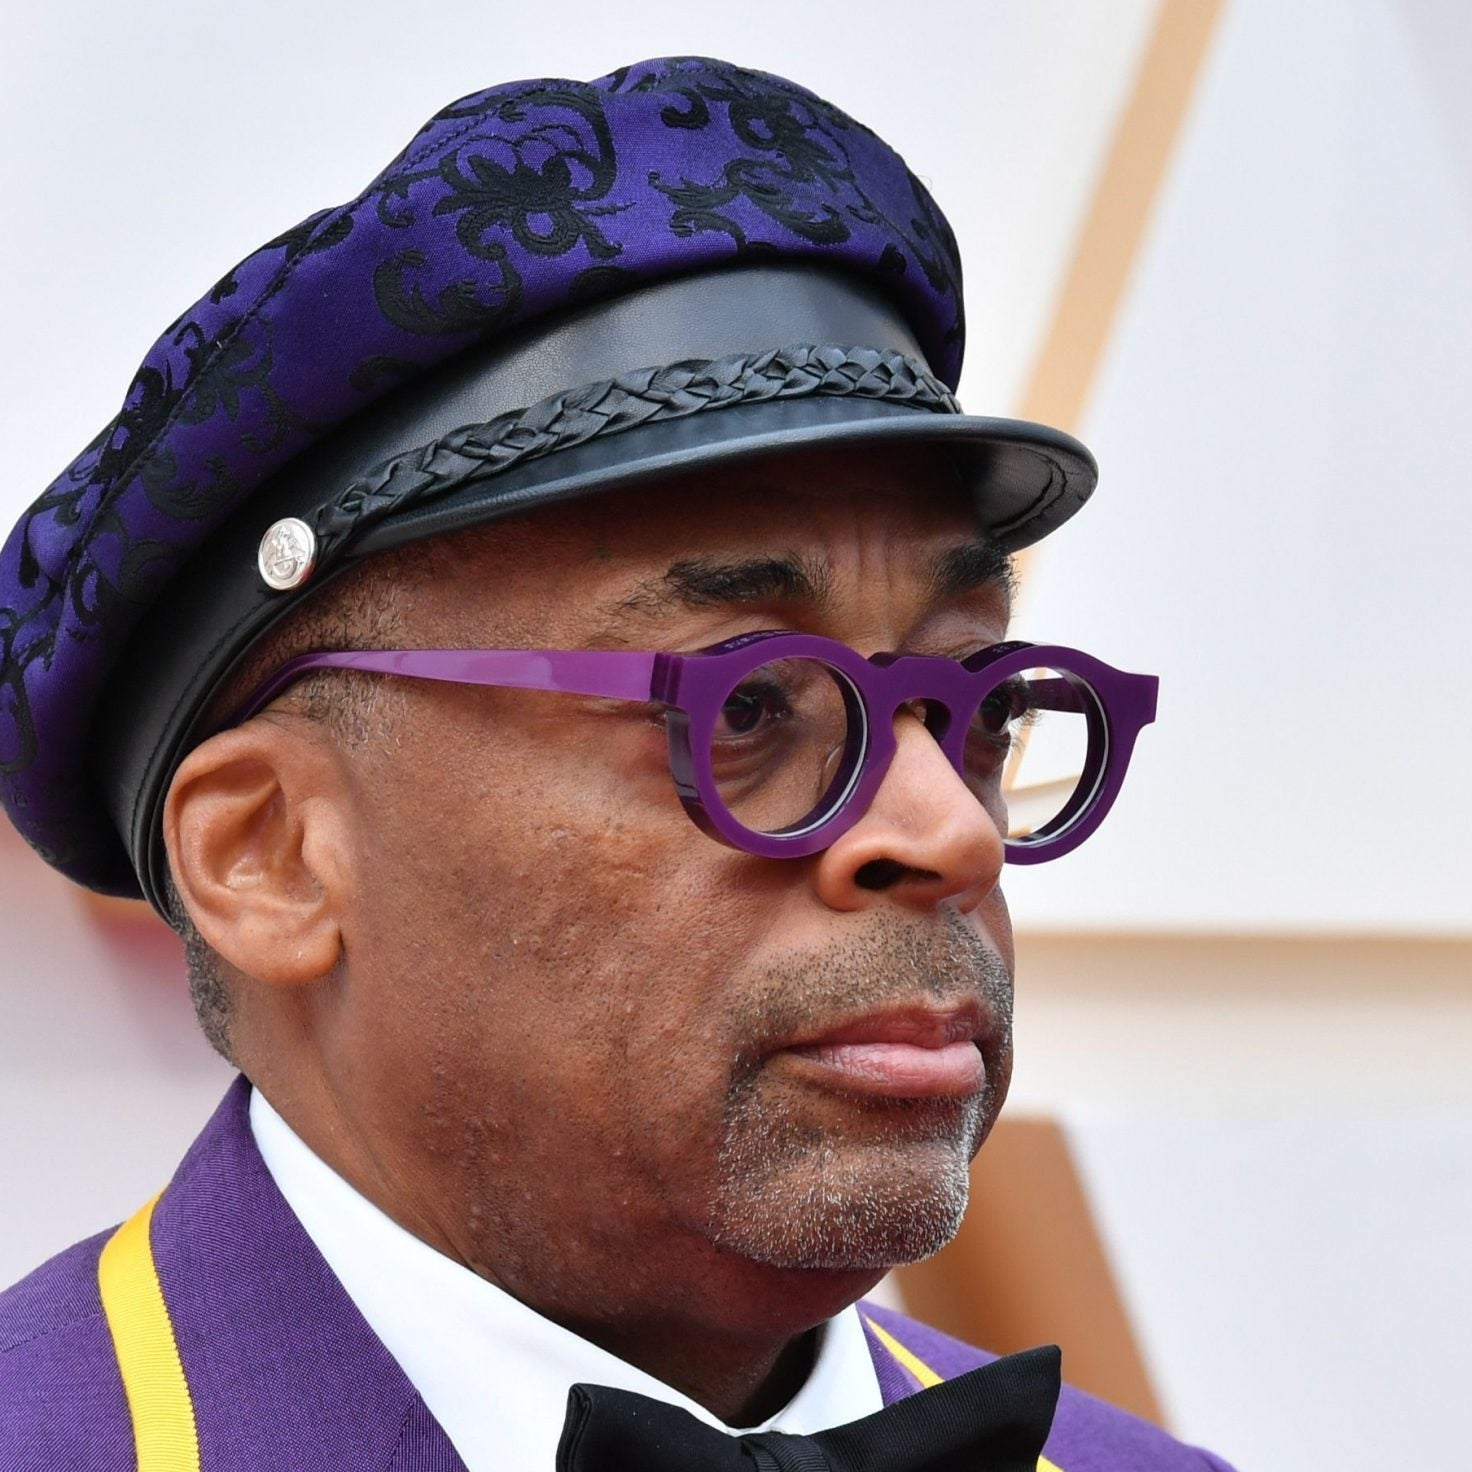 Spike Lee Pays Tribute To Kobe Bryant On Oscars Red Carpet